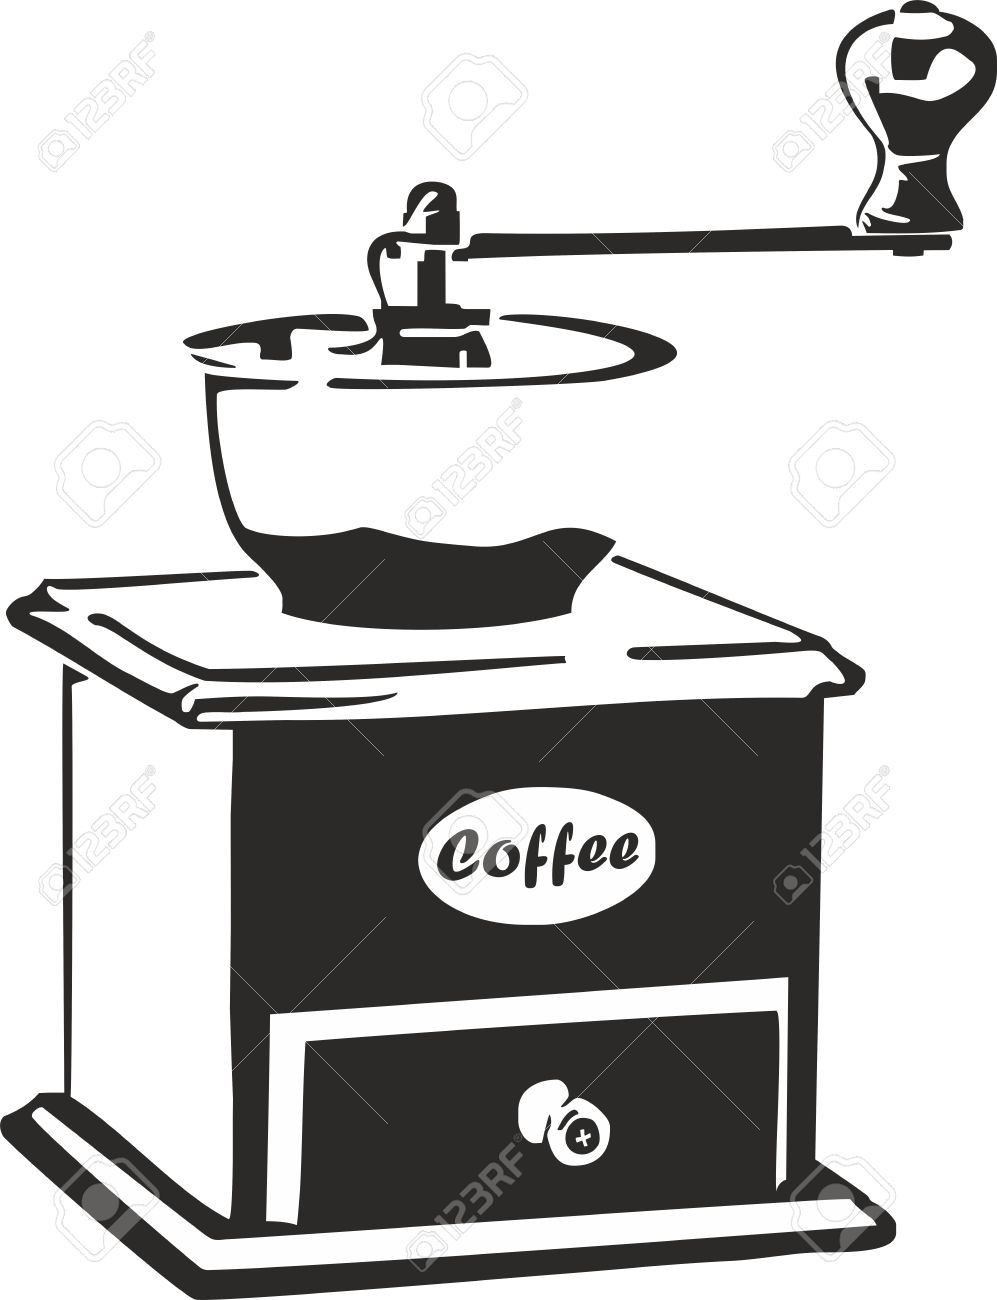 vector illustration of an old coffee grinder royalty free cliparts rh 123rf com